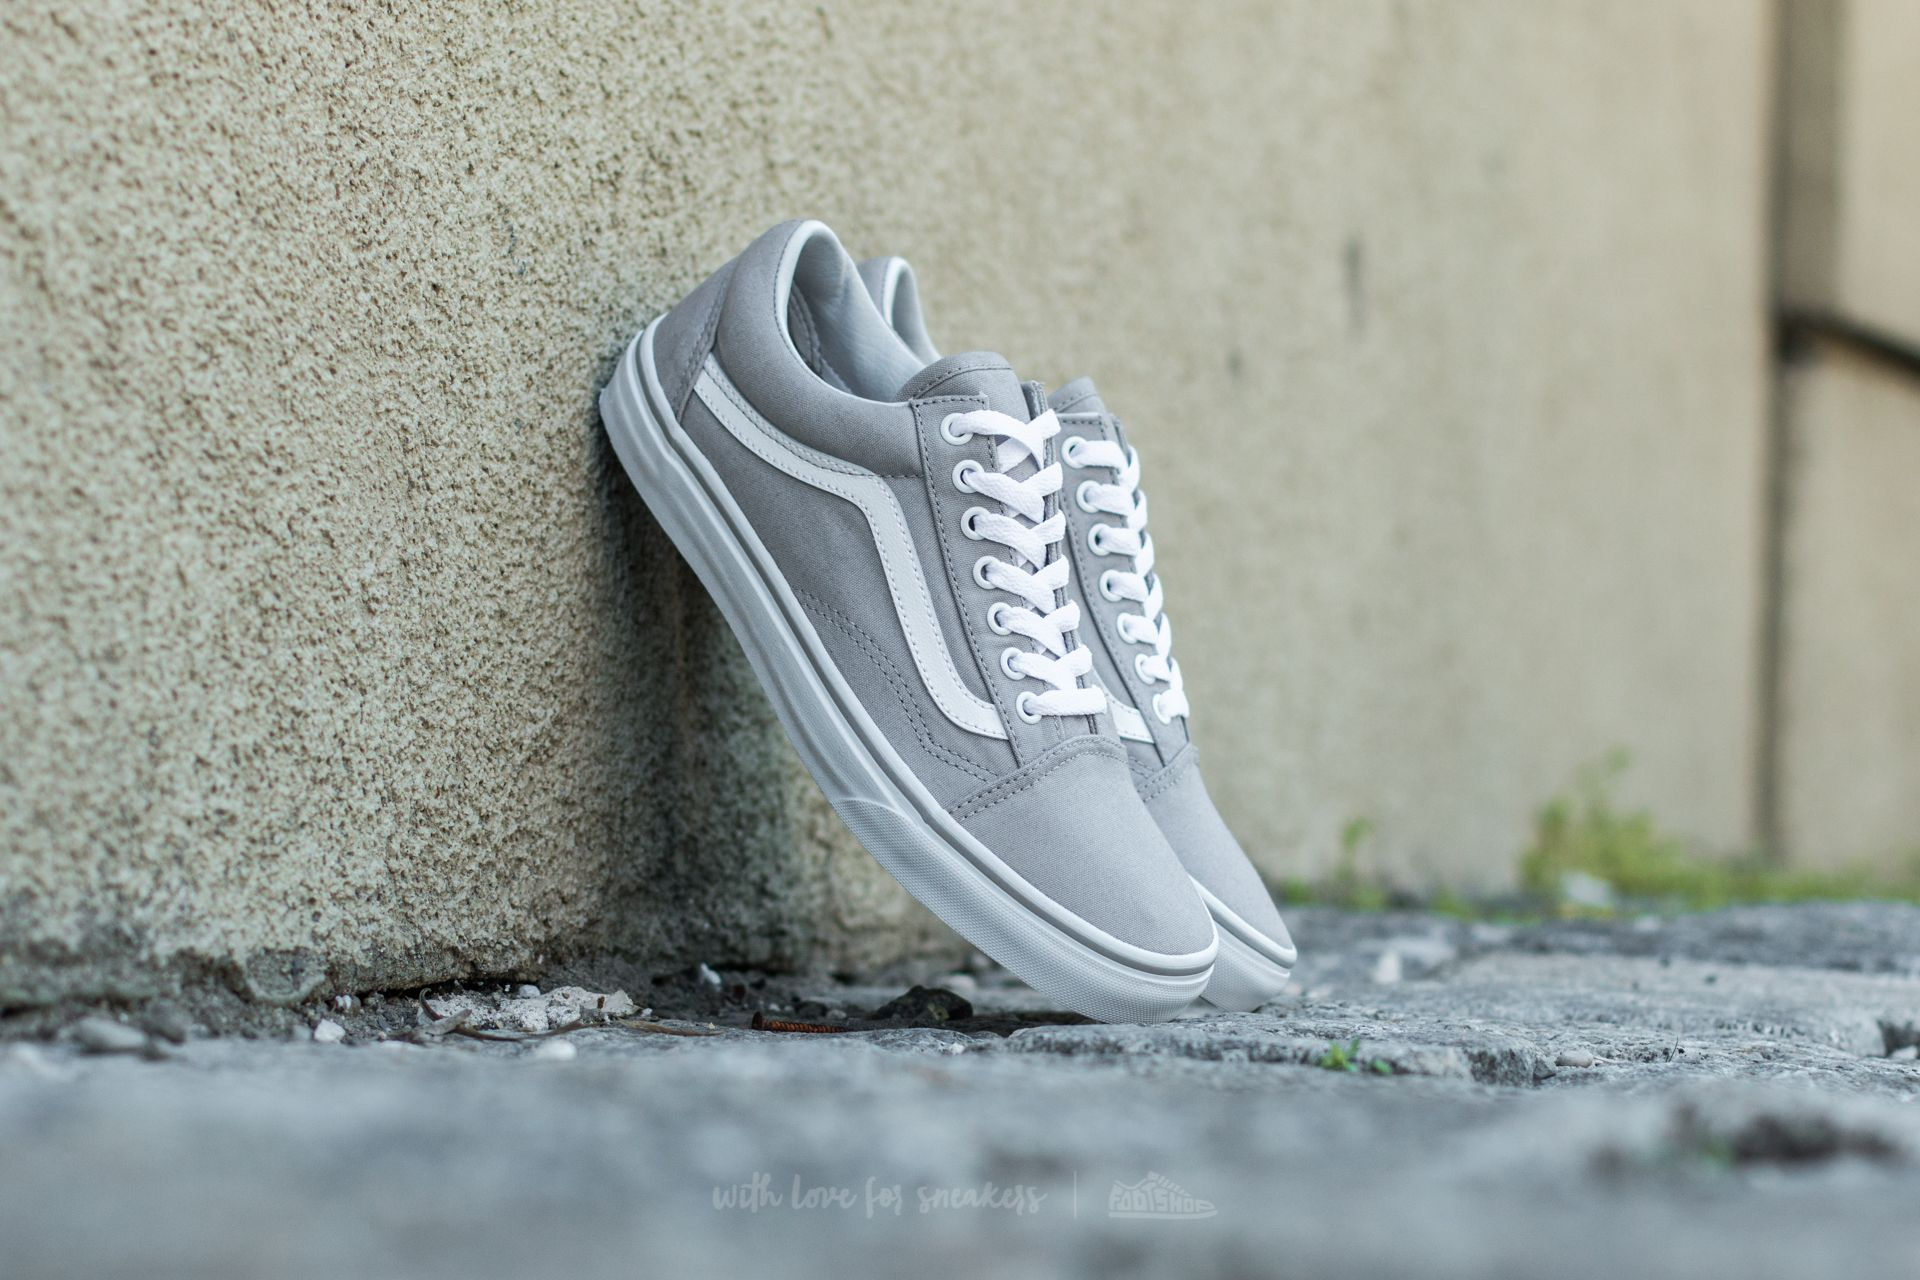 Vans Old Skool Drizzle Drizzle/ True White